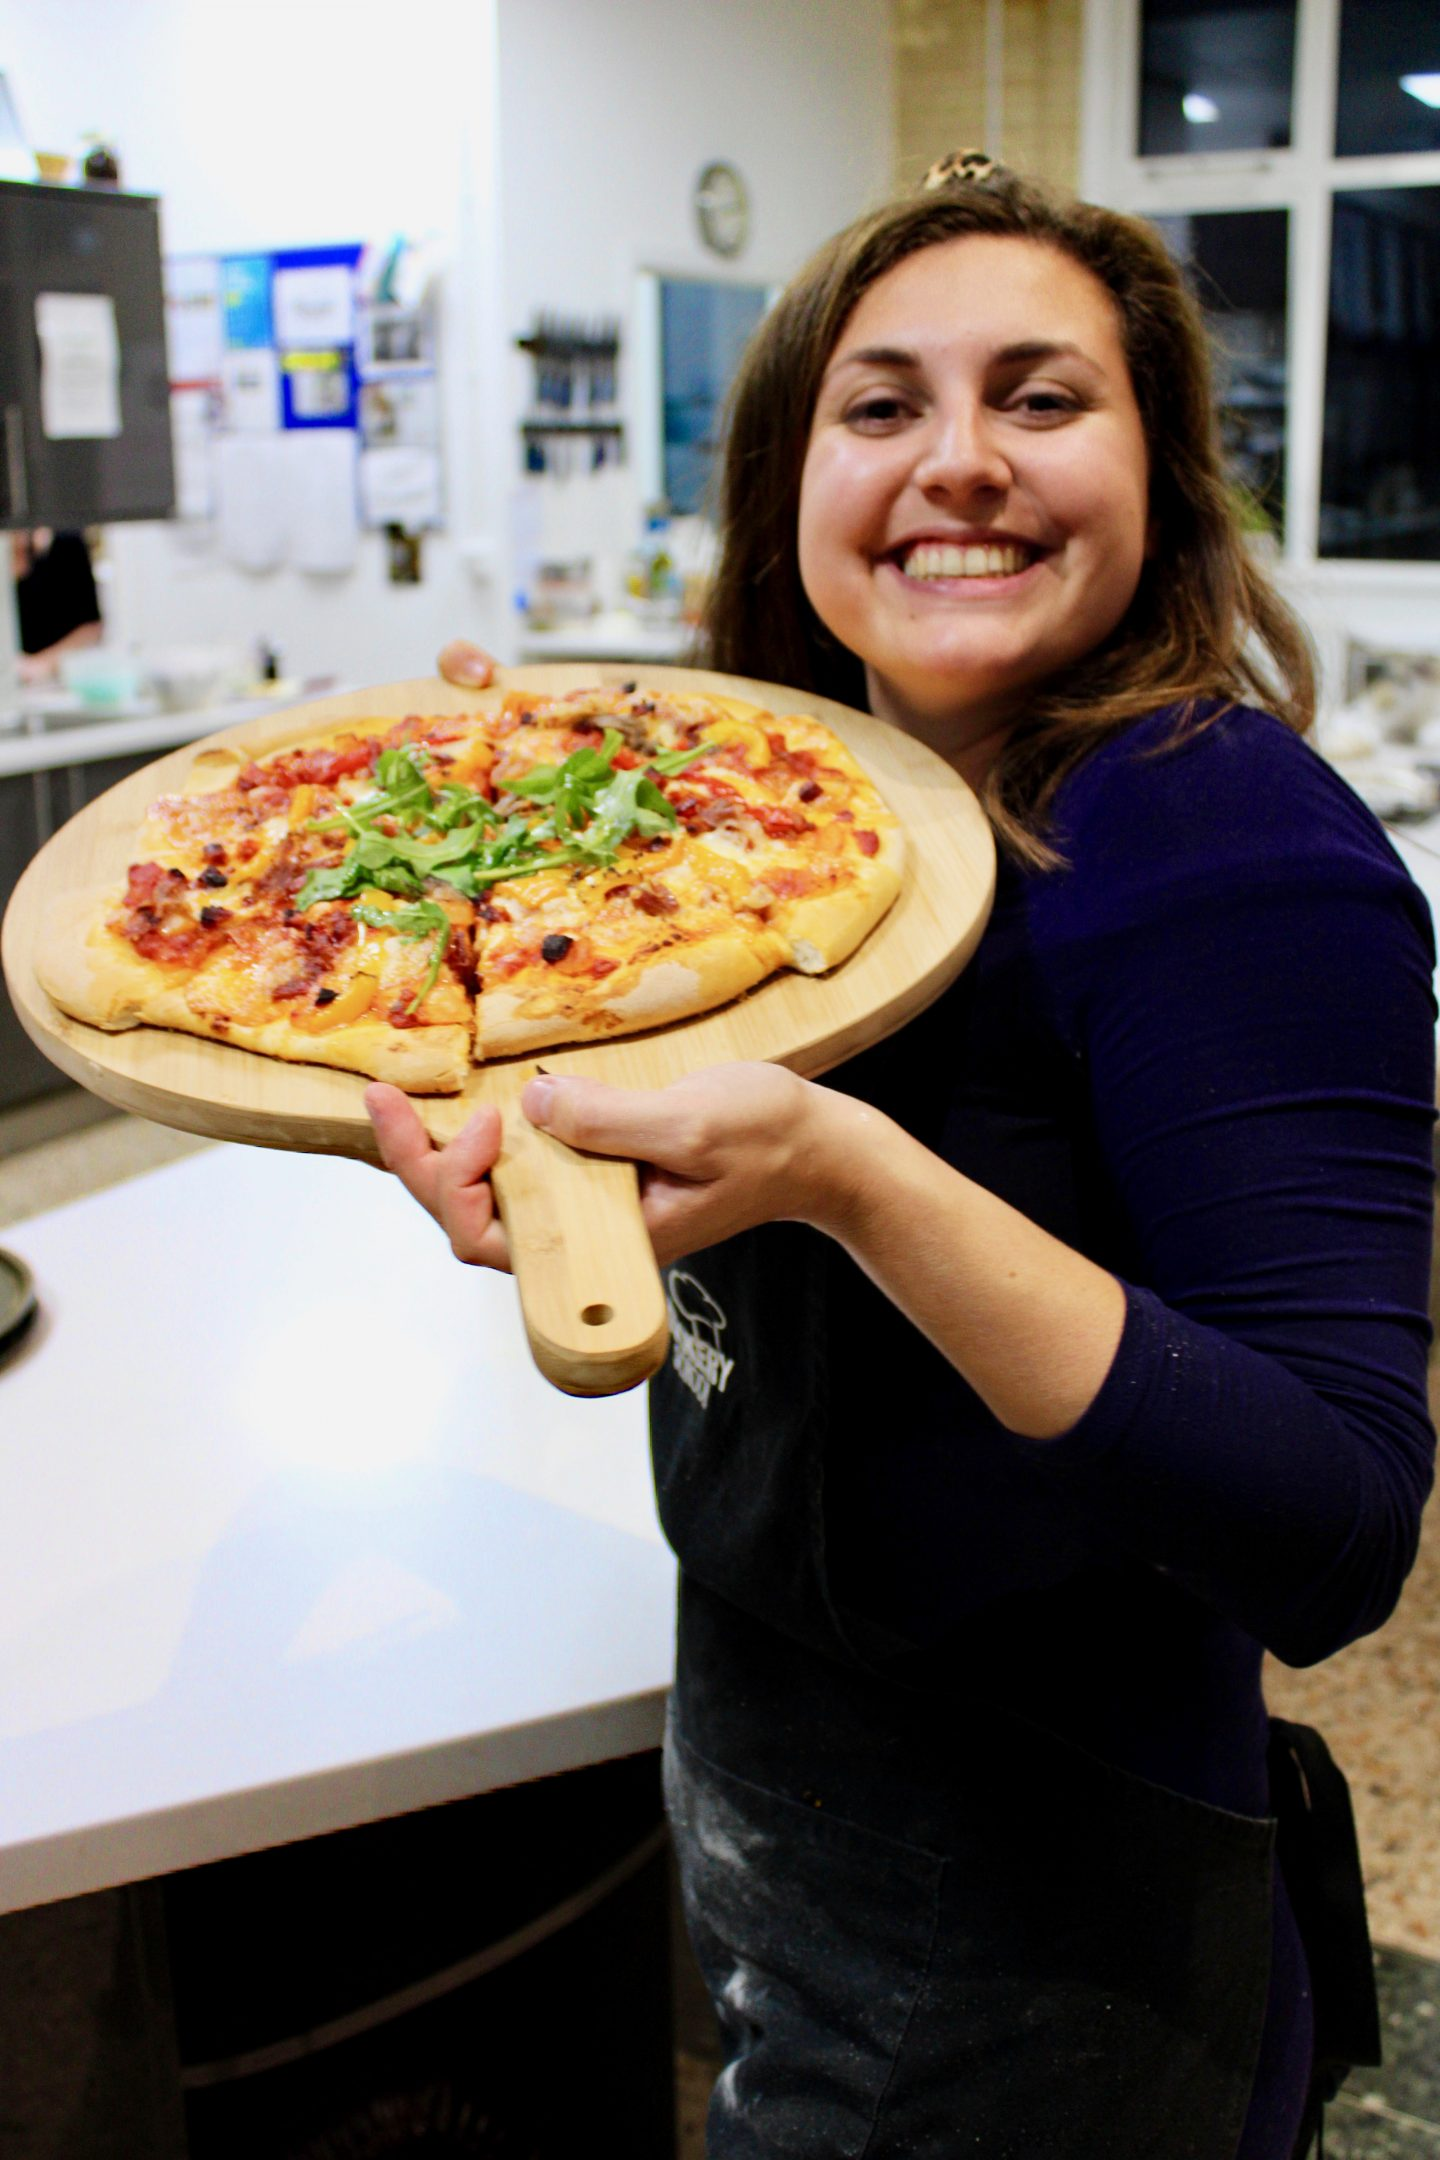 pizza making class leeds cookery school: Nell holding up her cooked pizza on a wooden board and smiling. She looks very happy with the results